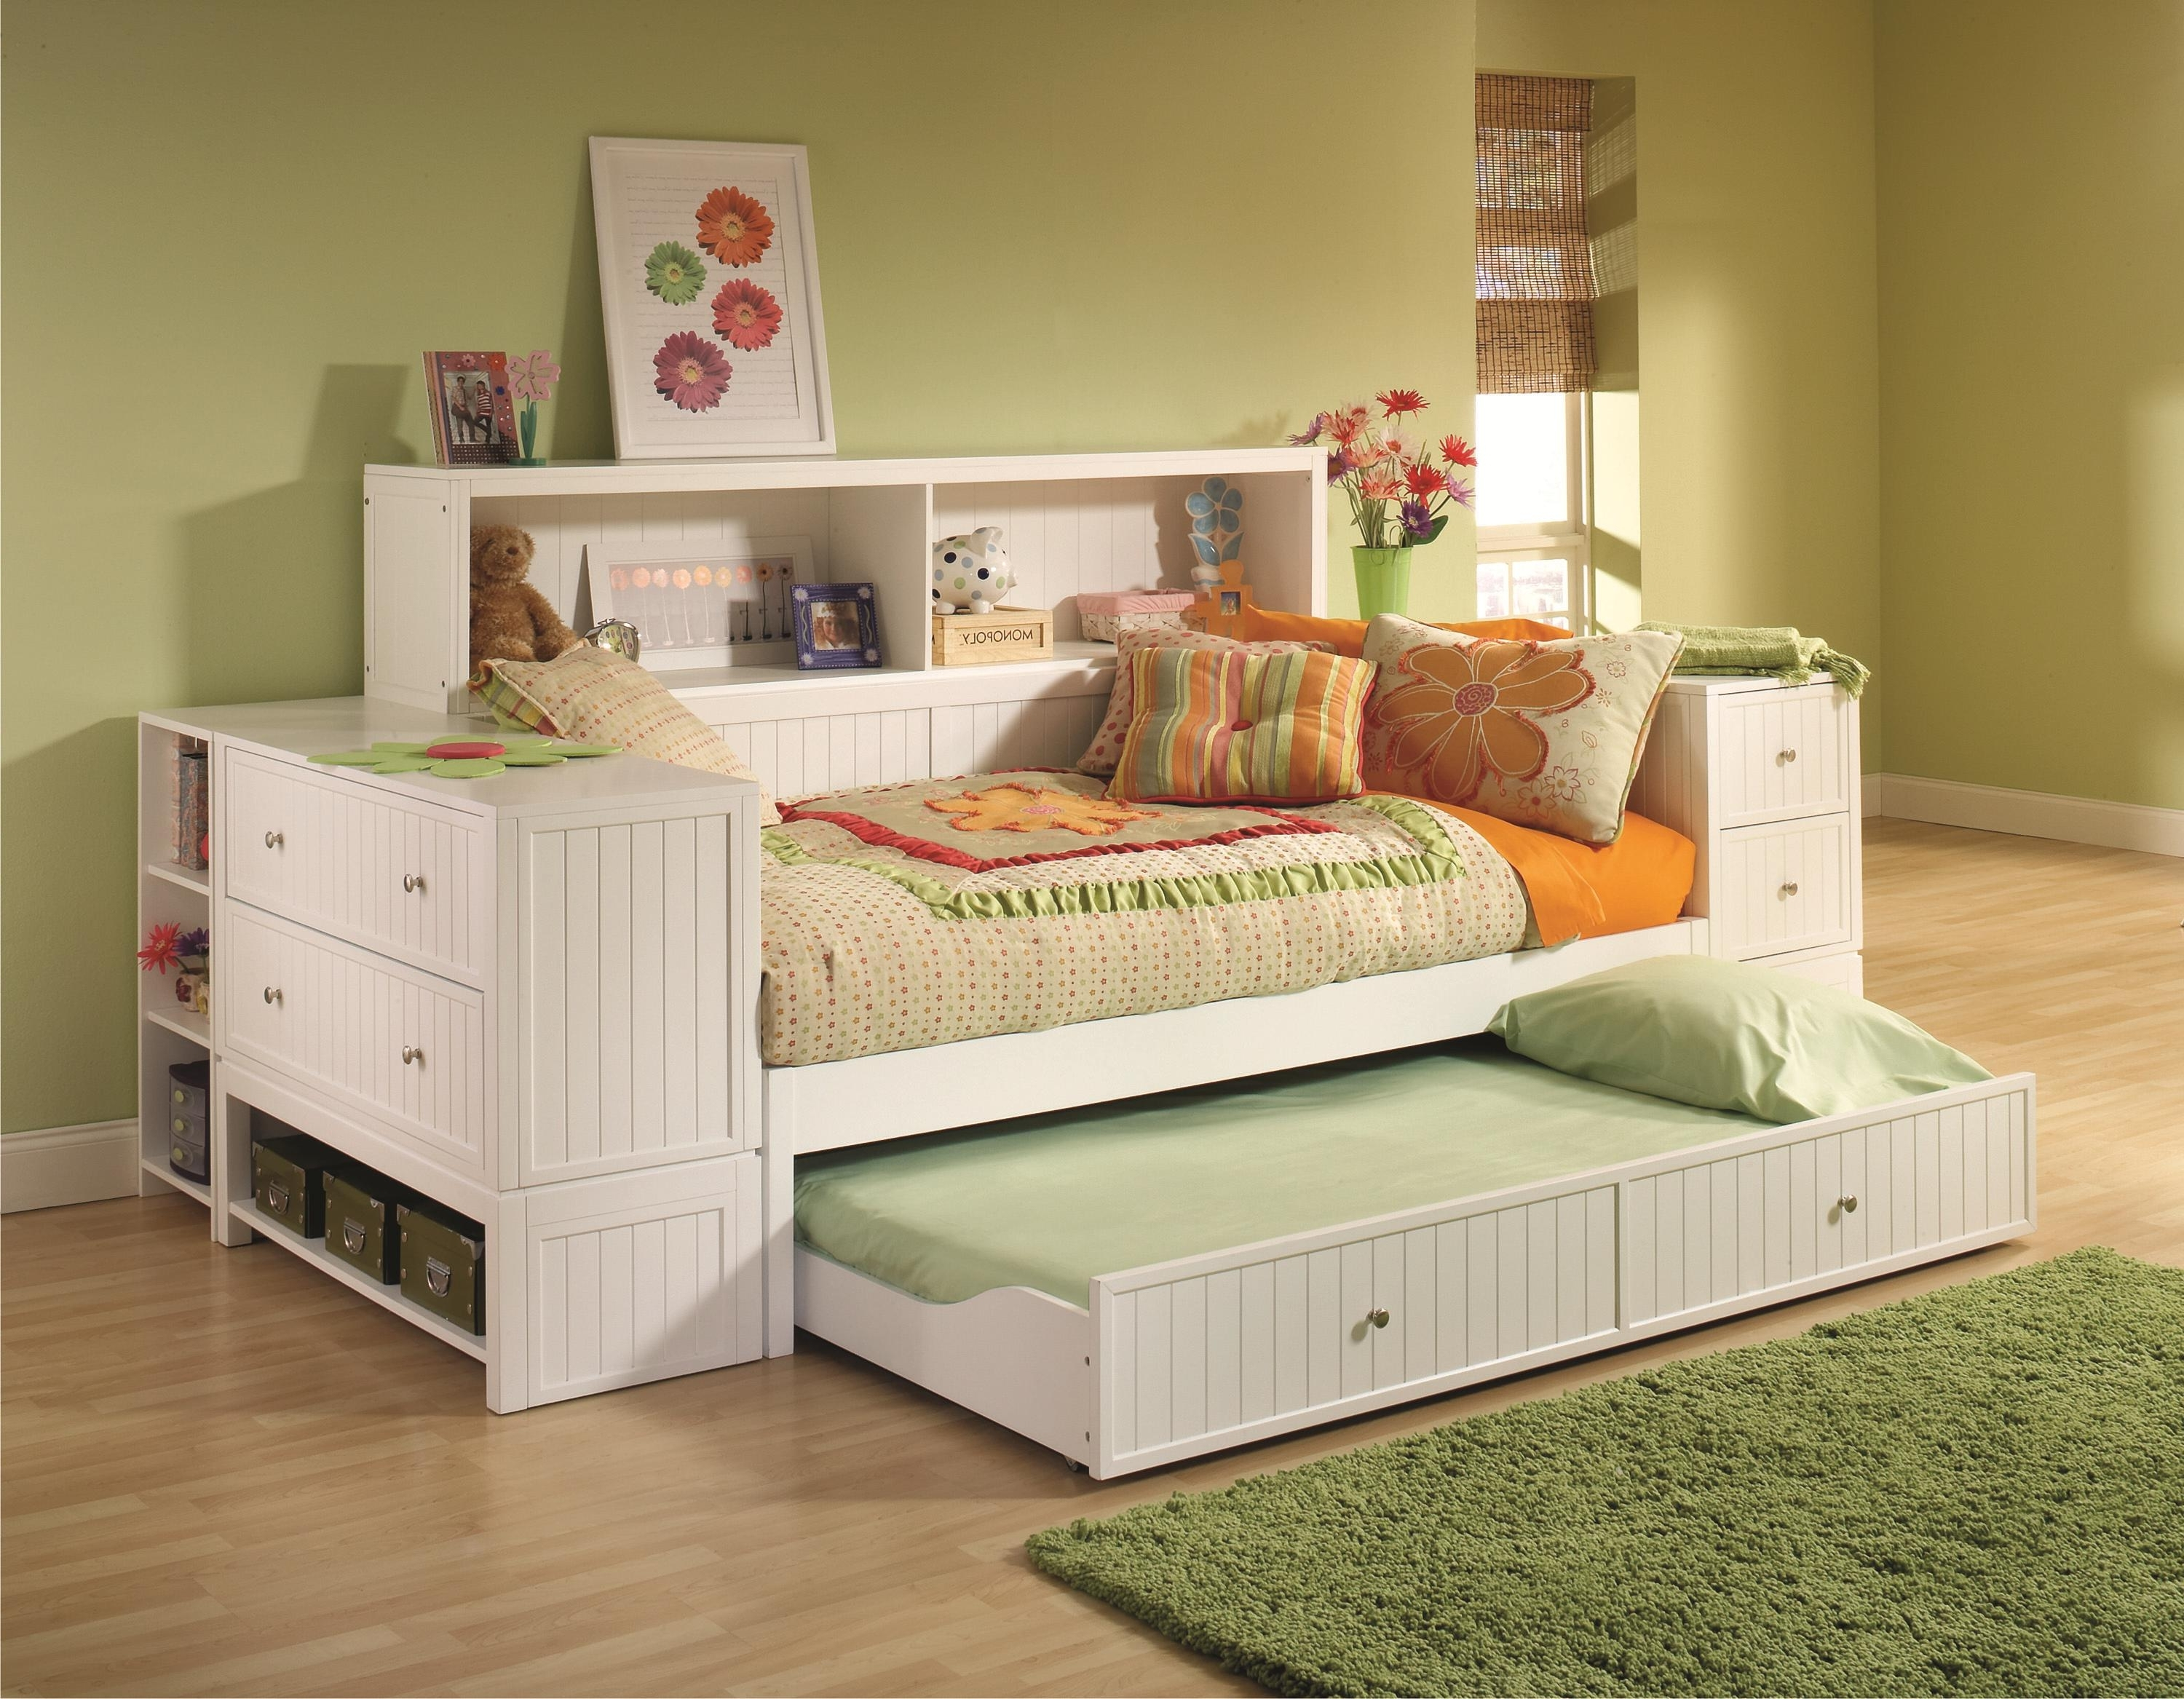 Daybed Bookcases Pertaining To Newest Examplary Daybeds With Drawers Ideas For Storage Drawers Design (View 5 of 15)